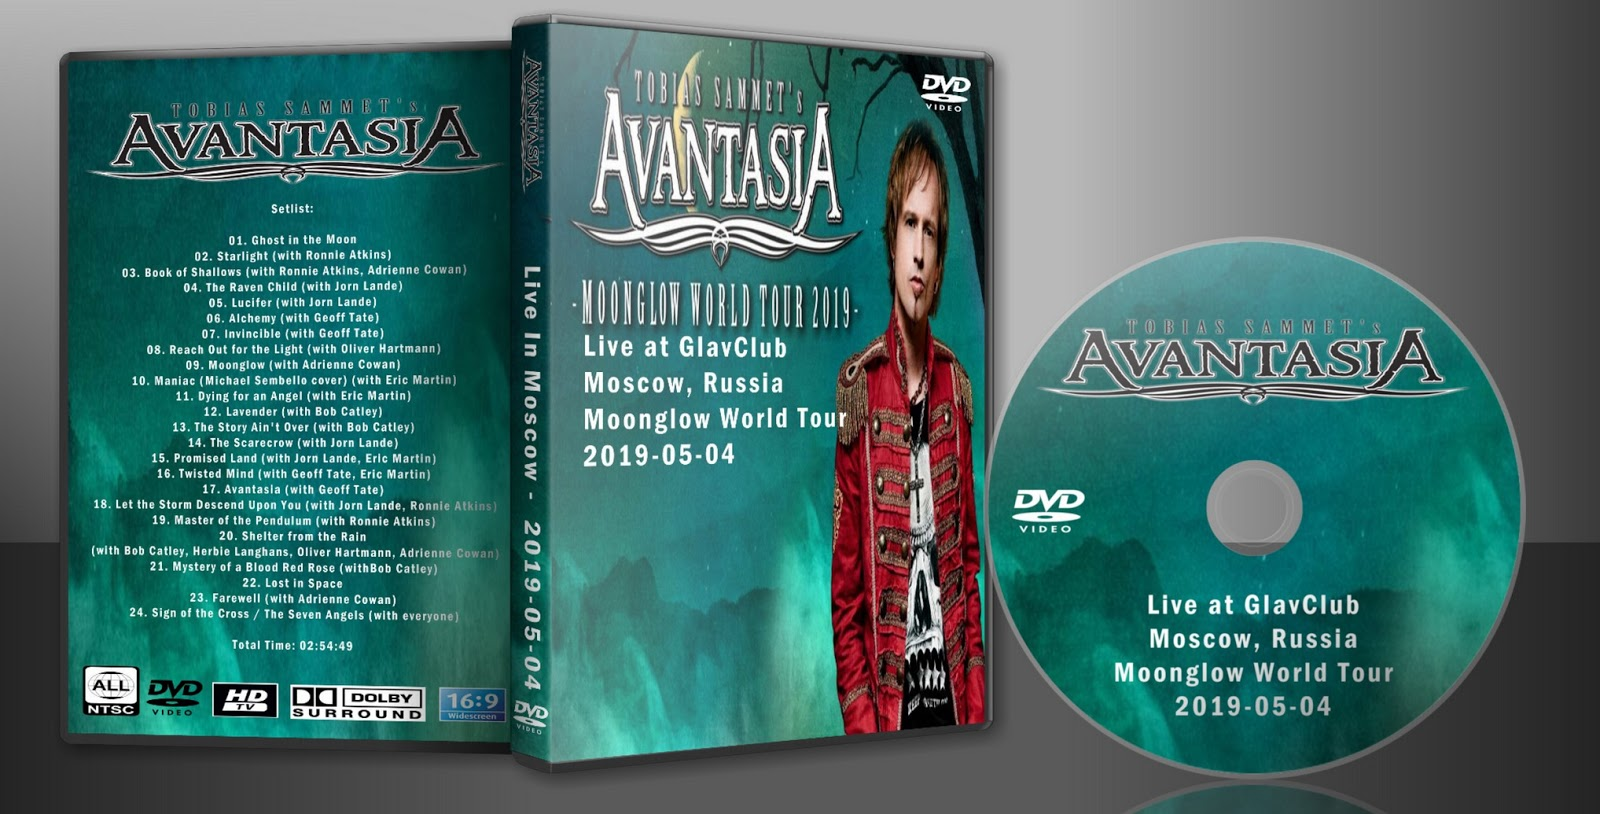 Deer5001RockCocert : Avantasia - 2019-05-04 - Live at GlavClub